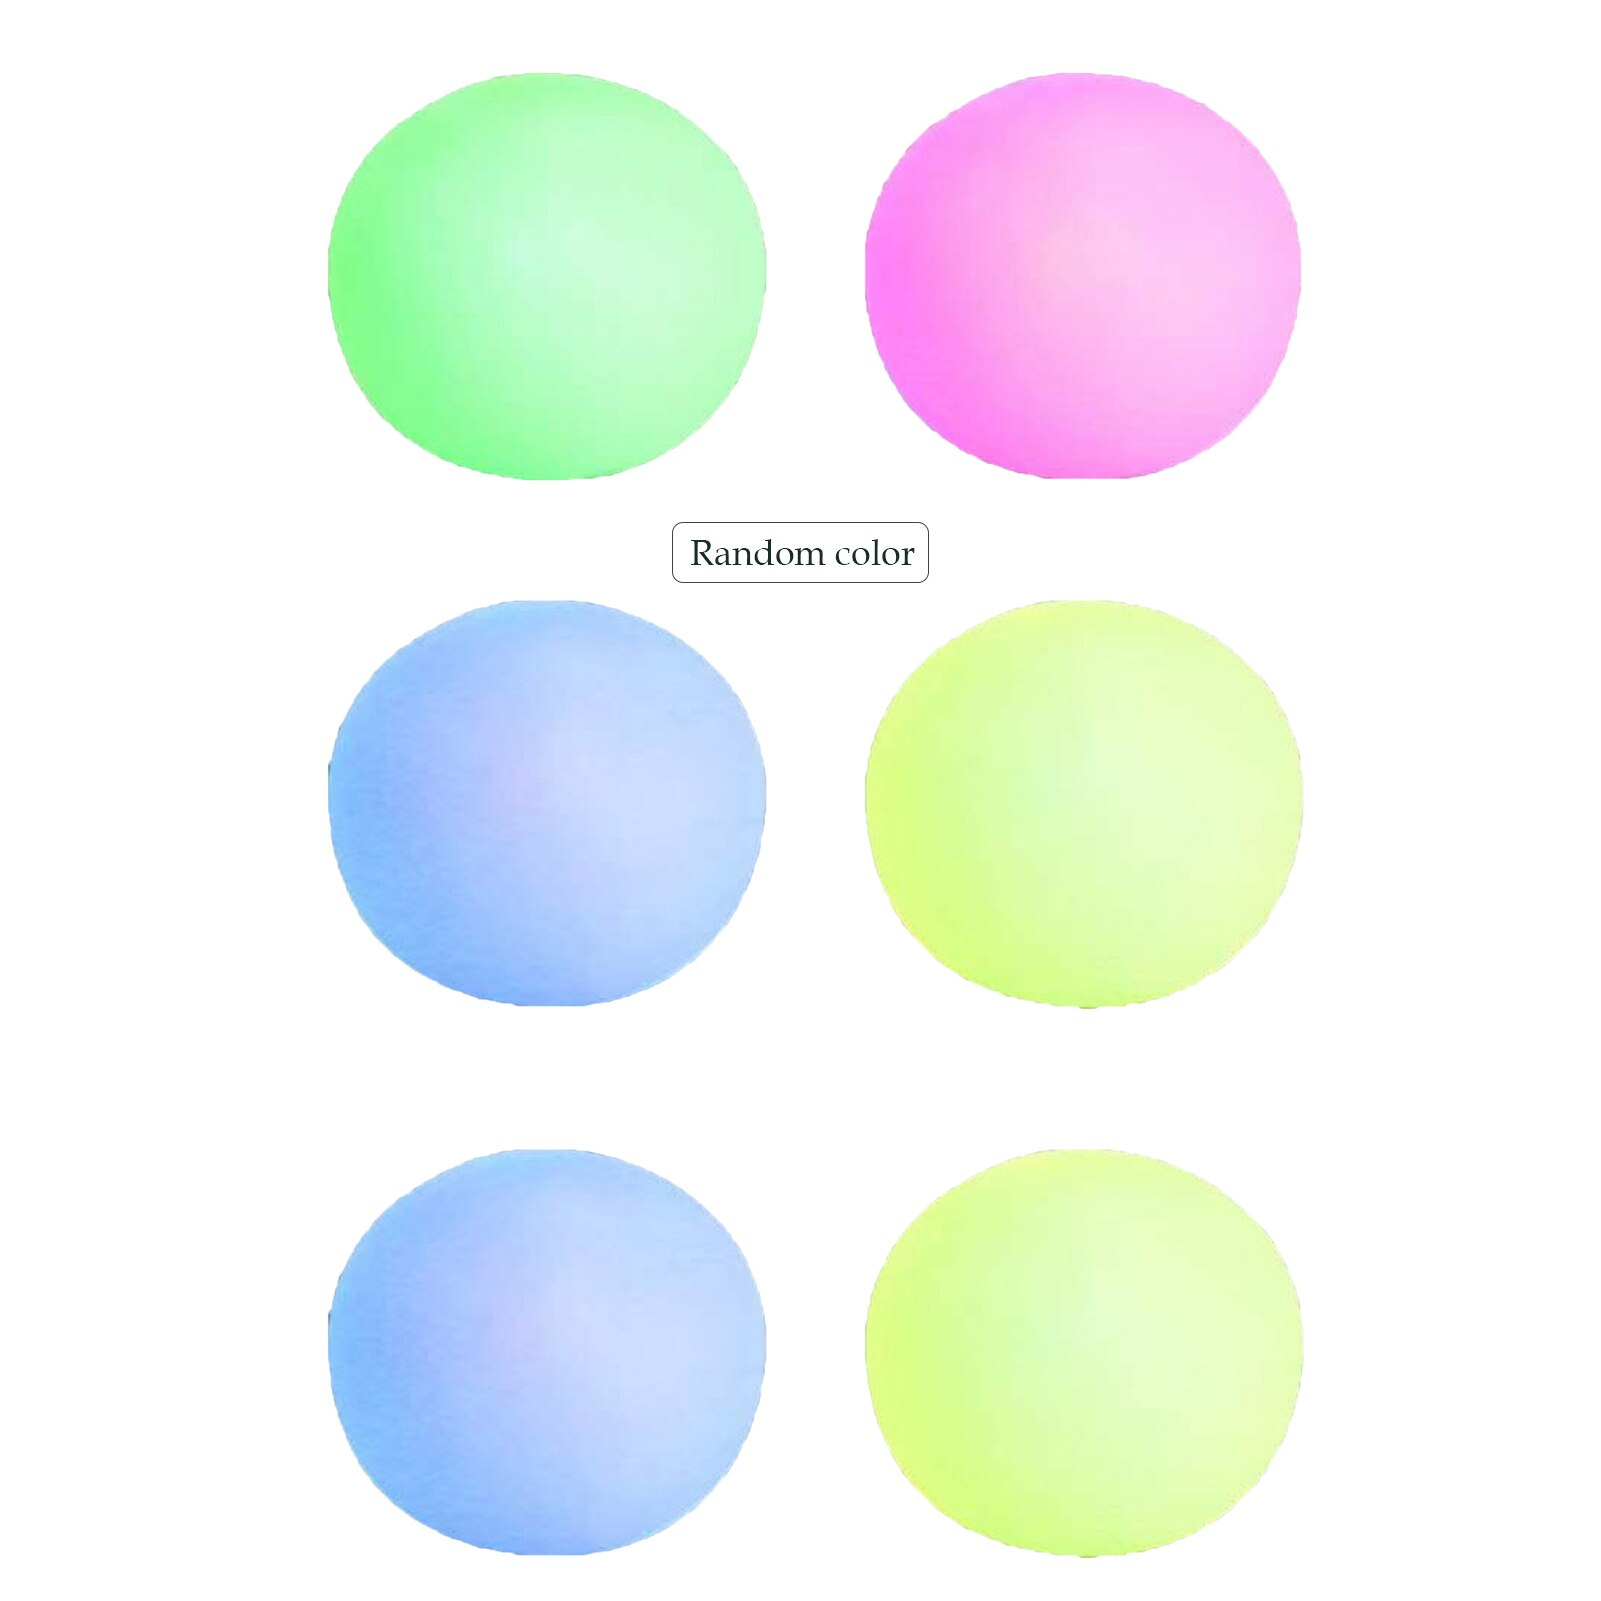 1PC Novelty Glowing Stress Ball Fidget Toy Squeeze Toy Luminous Decompression Ball Throw Toy Stress Relief Balls For Adults Kids enlarge